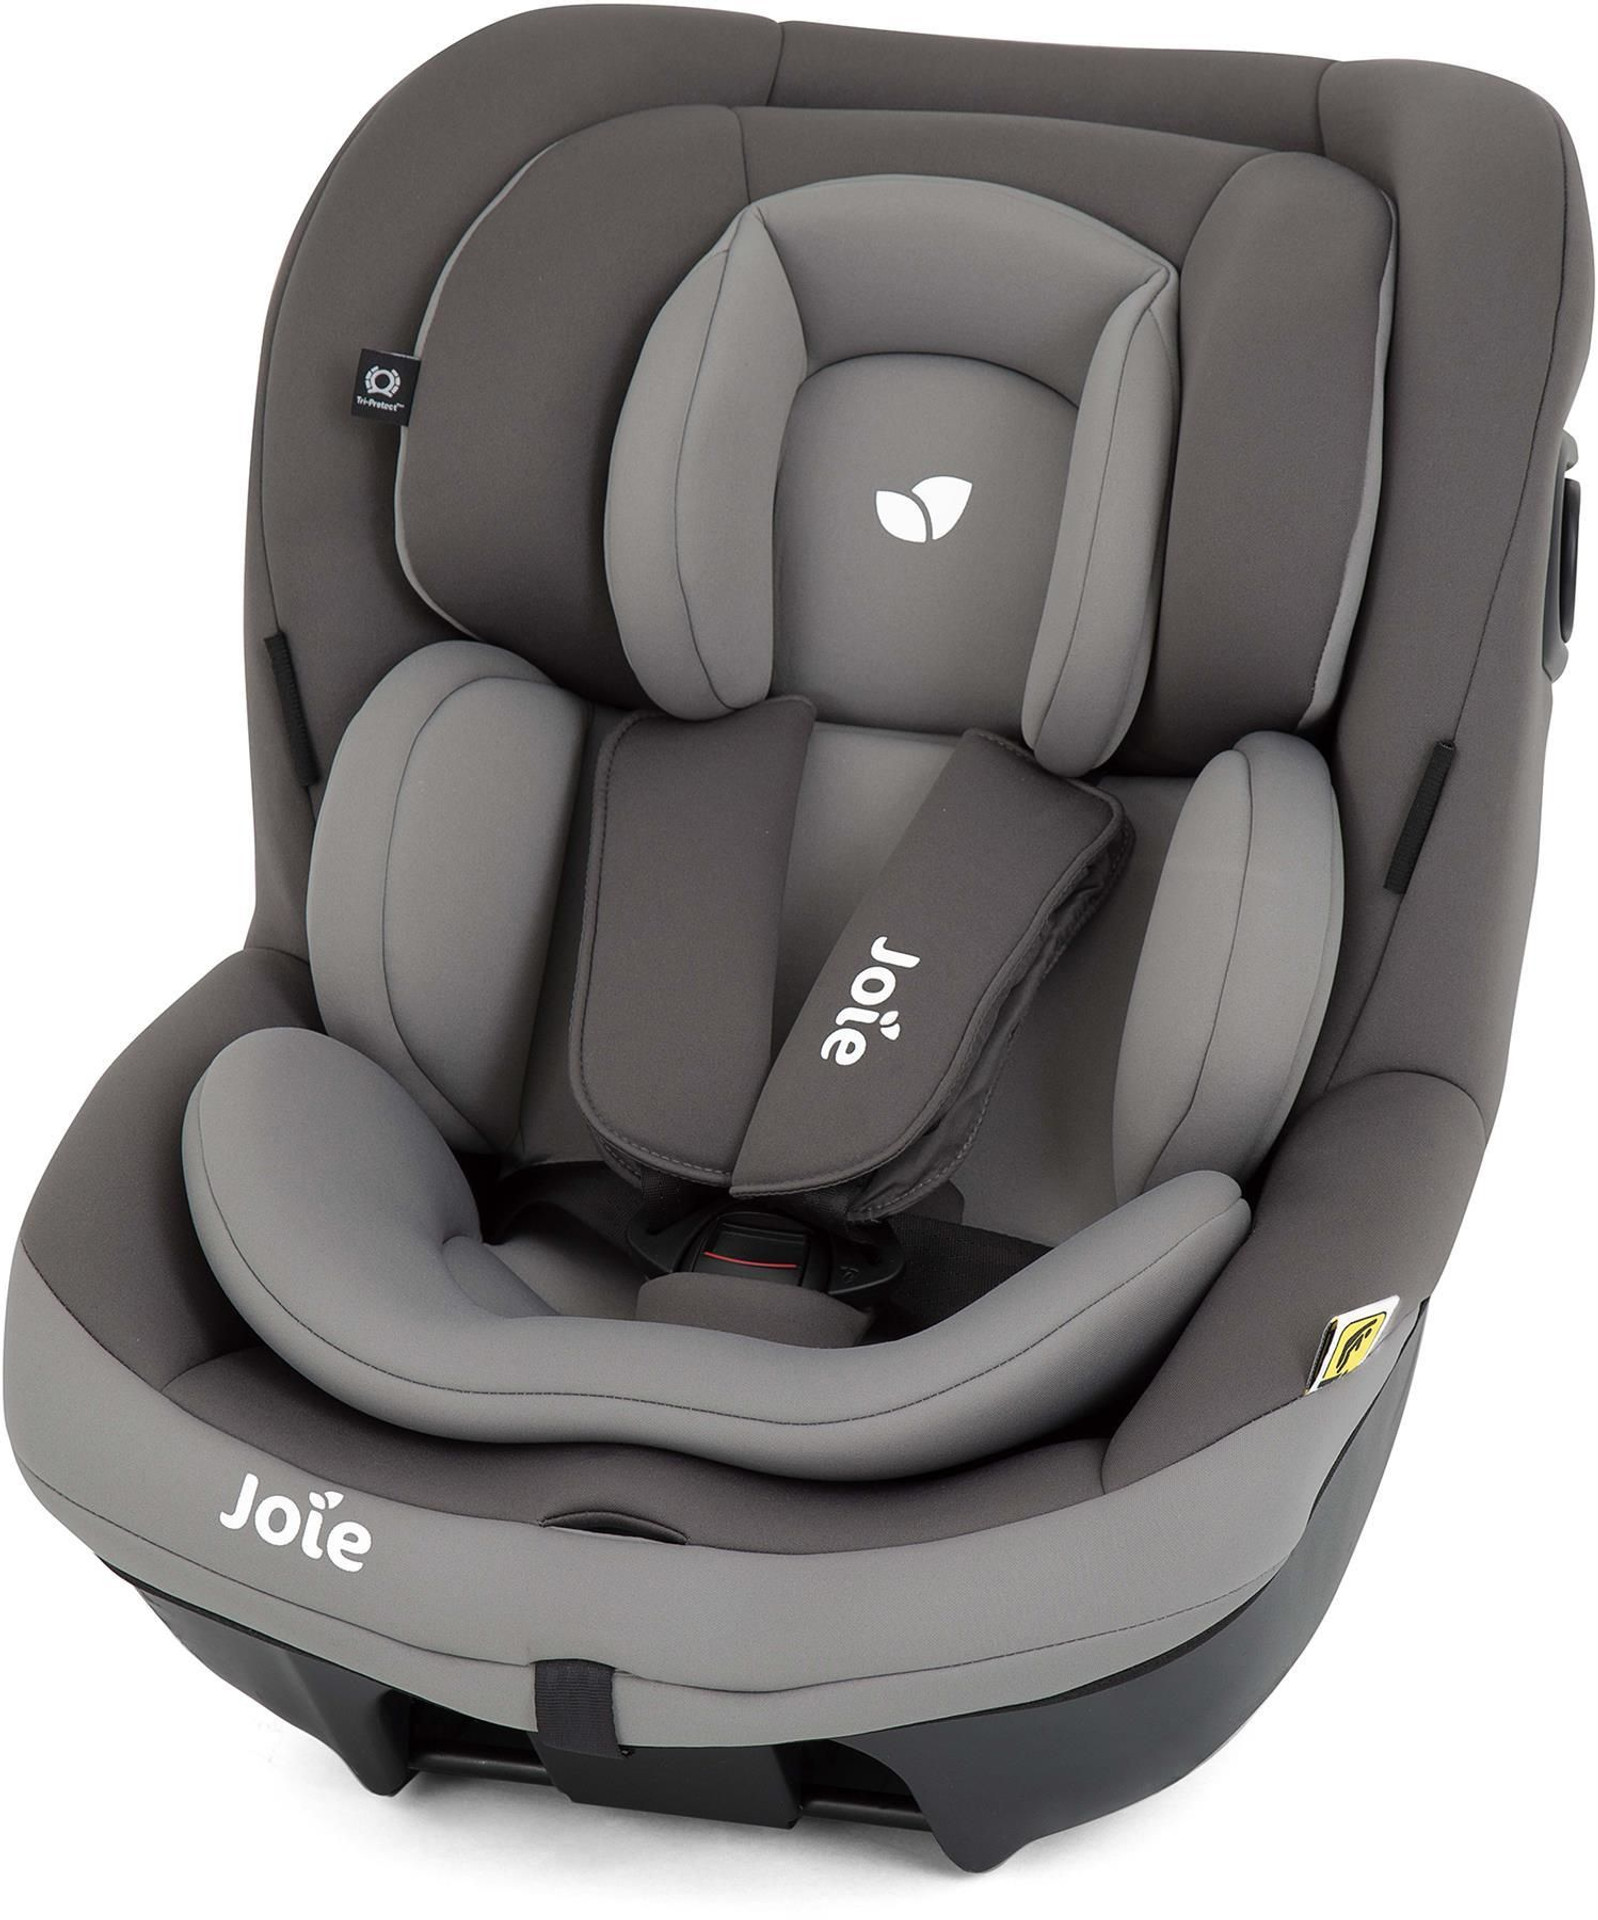 Joie I-Venture - Birth To Approx. 4 Years Car Seat - Dark Pewter